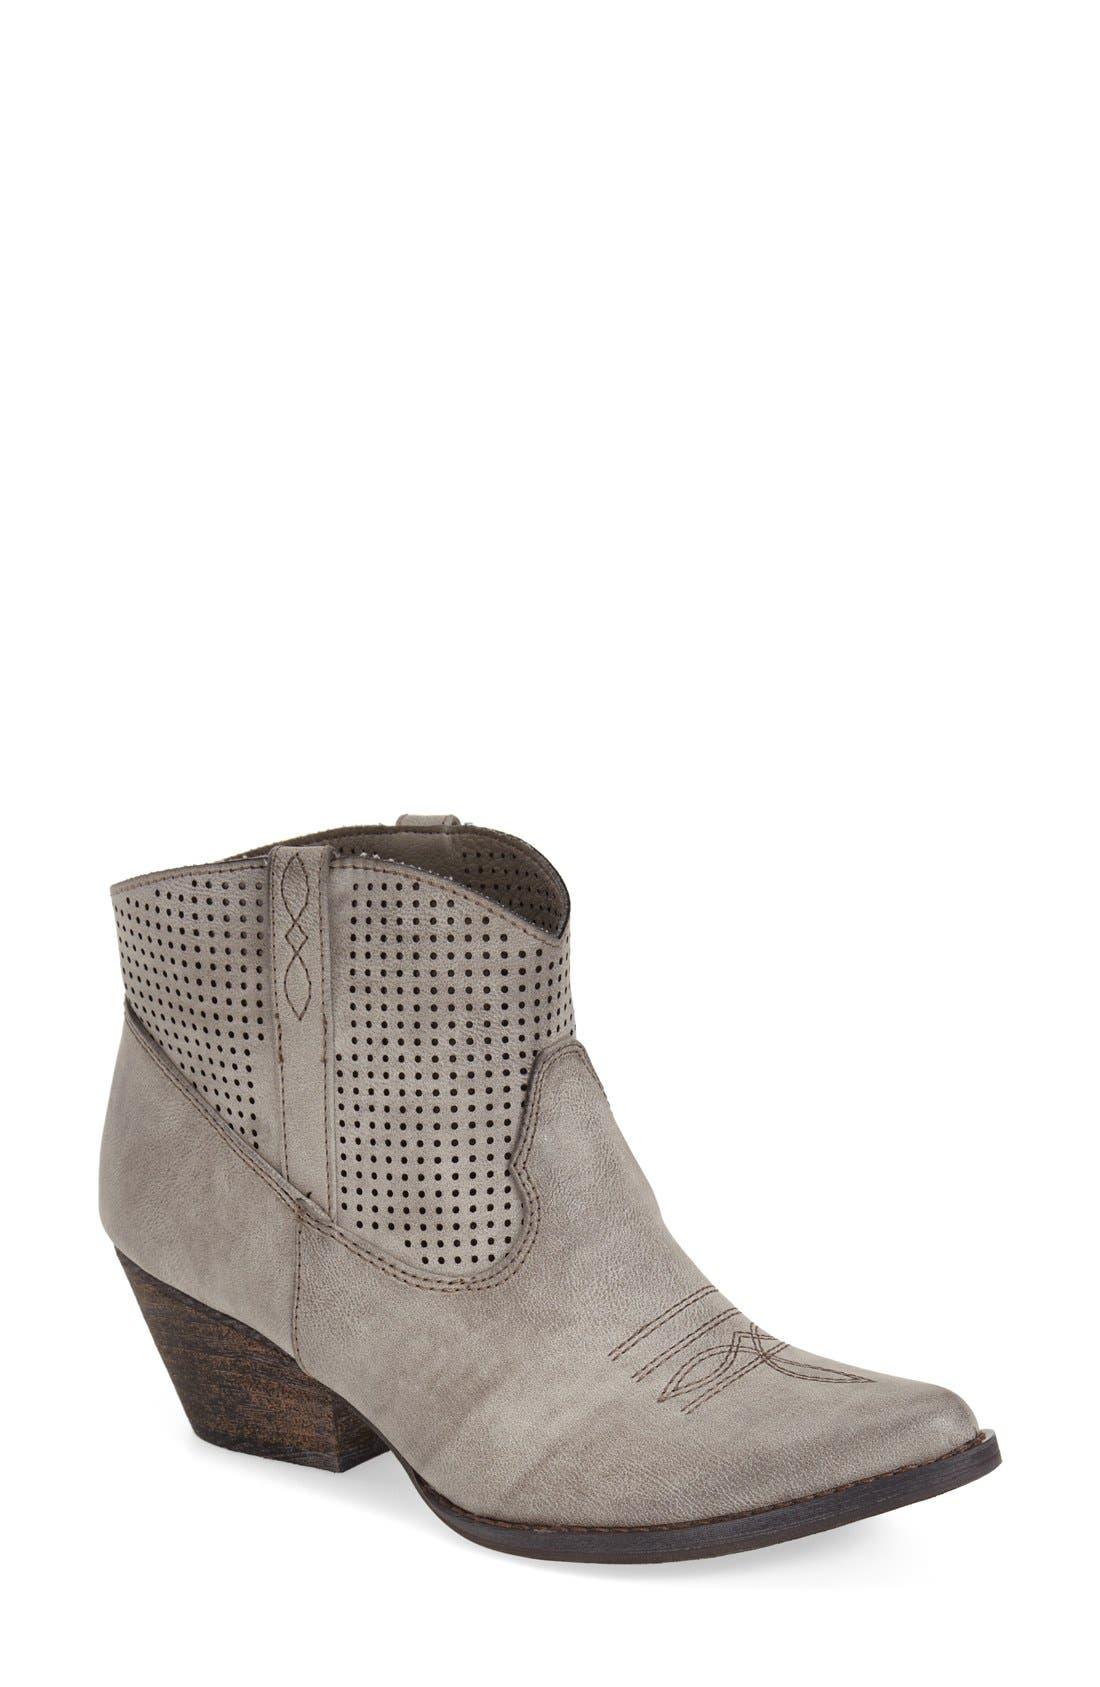 Alternate Image 1 Selected - Very Volatile 'Mishka' Perforated Western Bootie (Women)